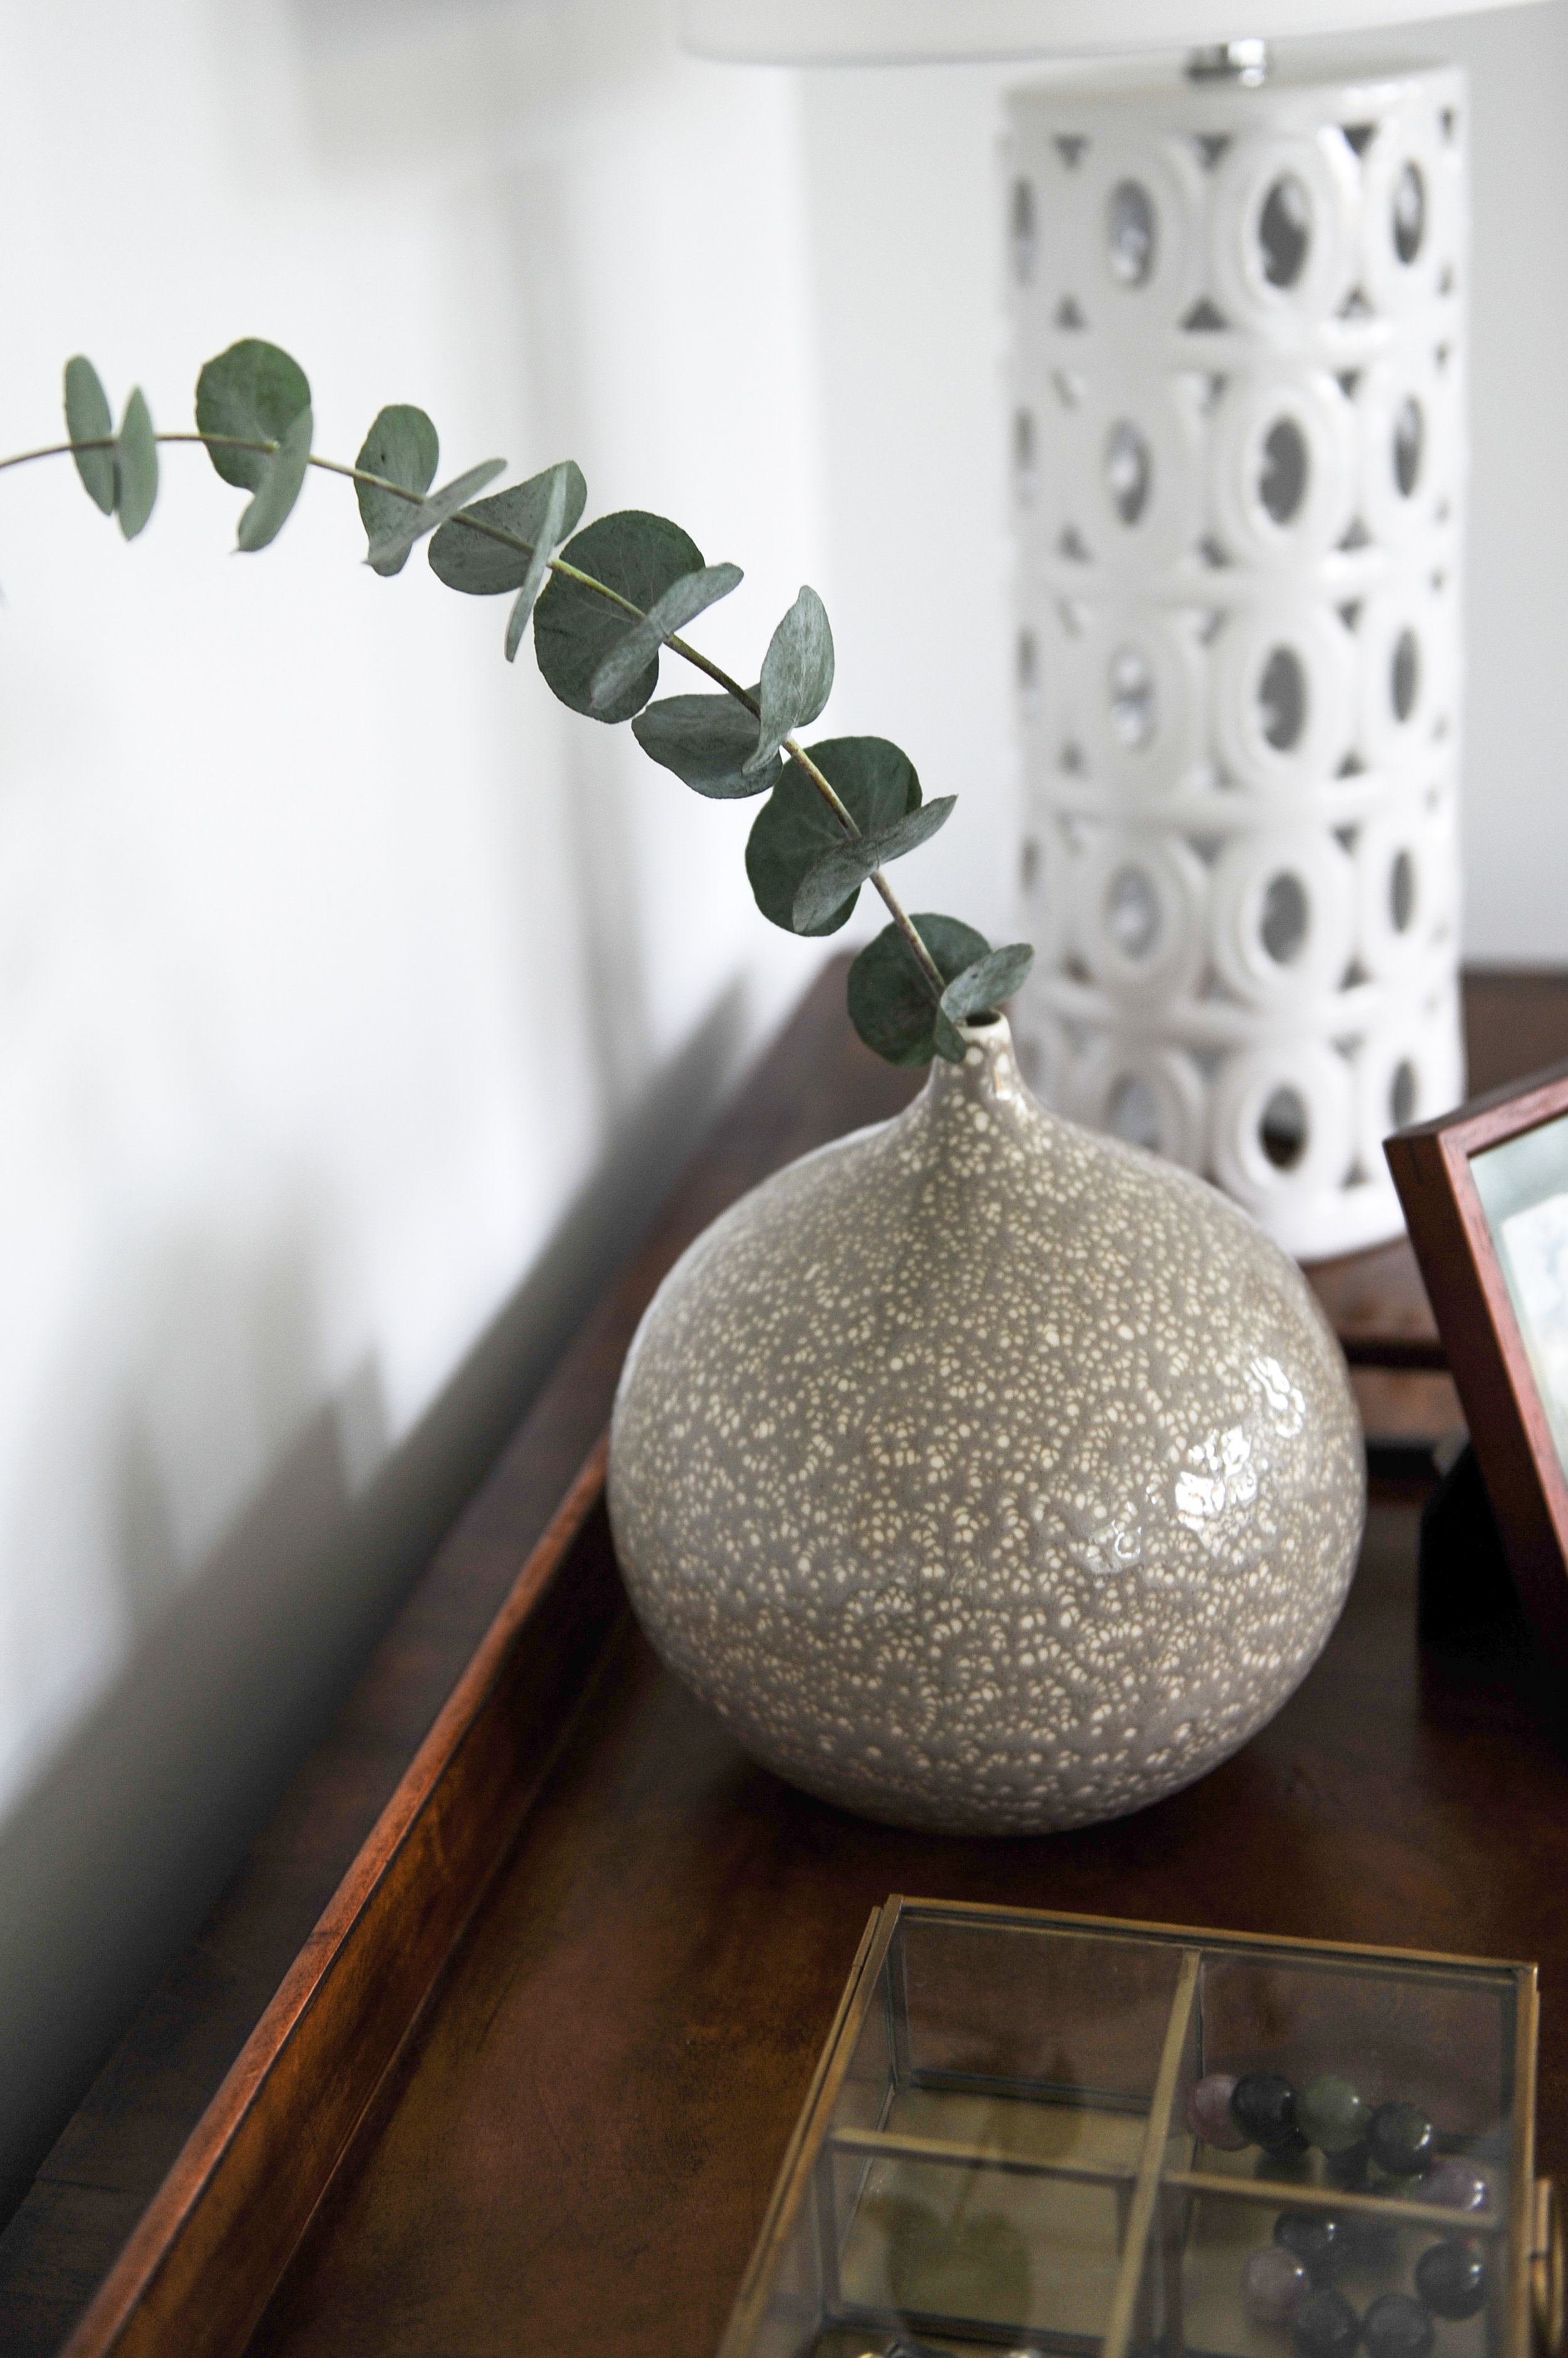 A little round vase with a decorative leaf sits in a wooden tray table beside an intricate white lamp.